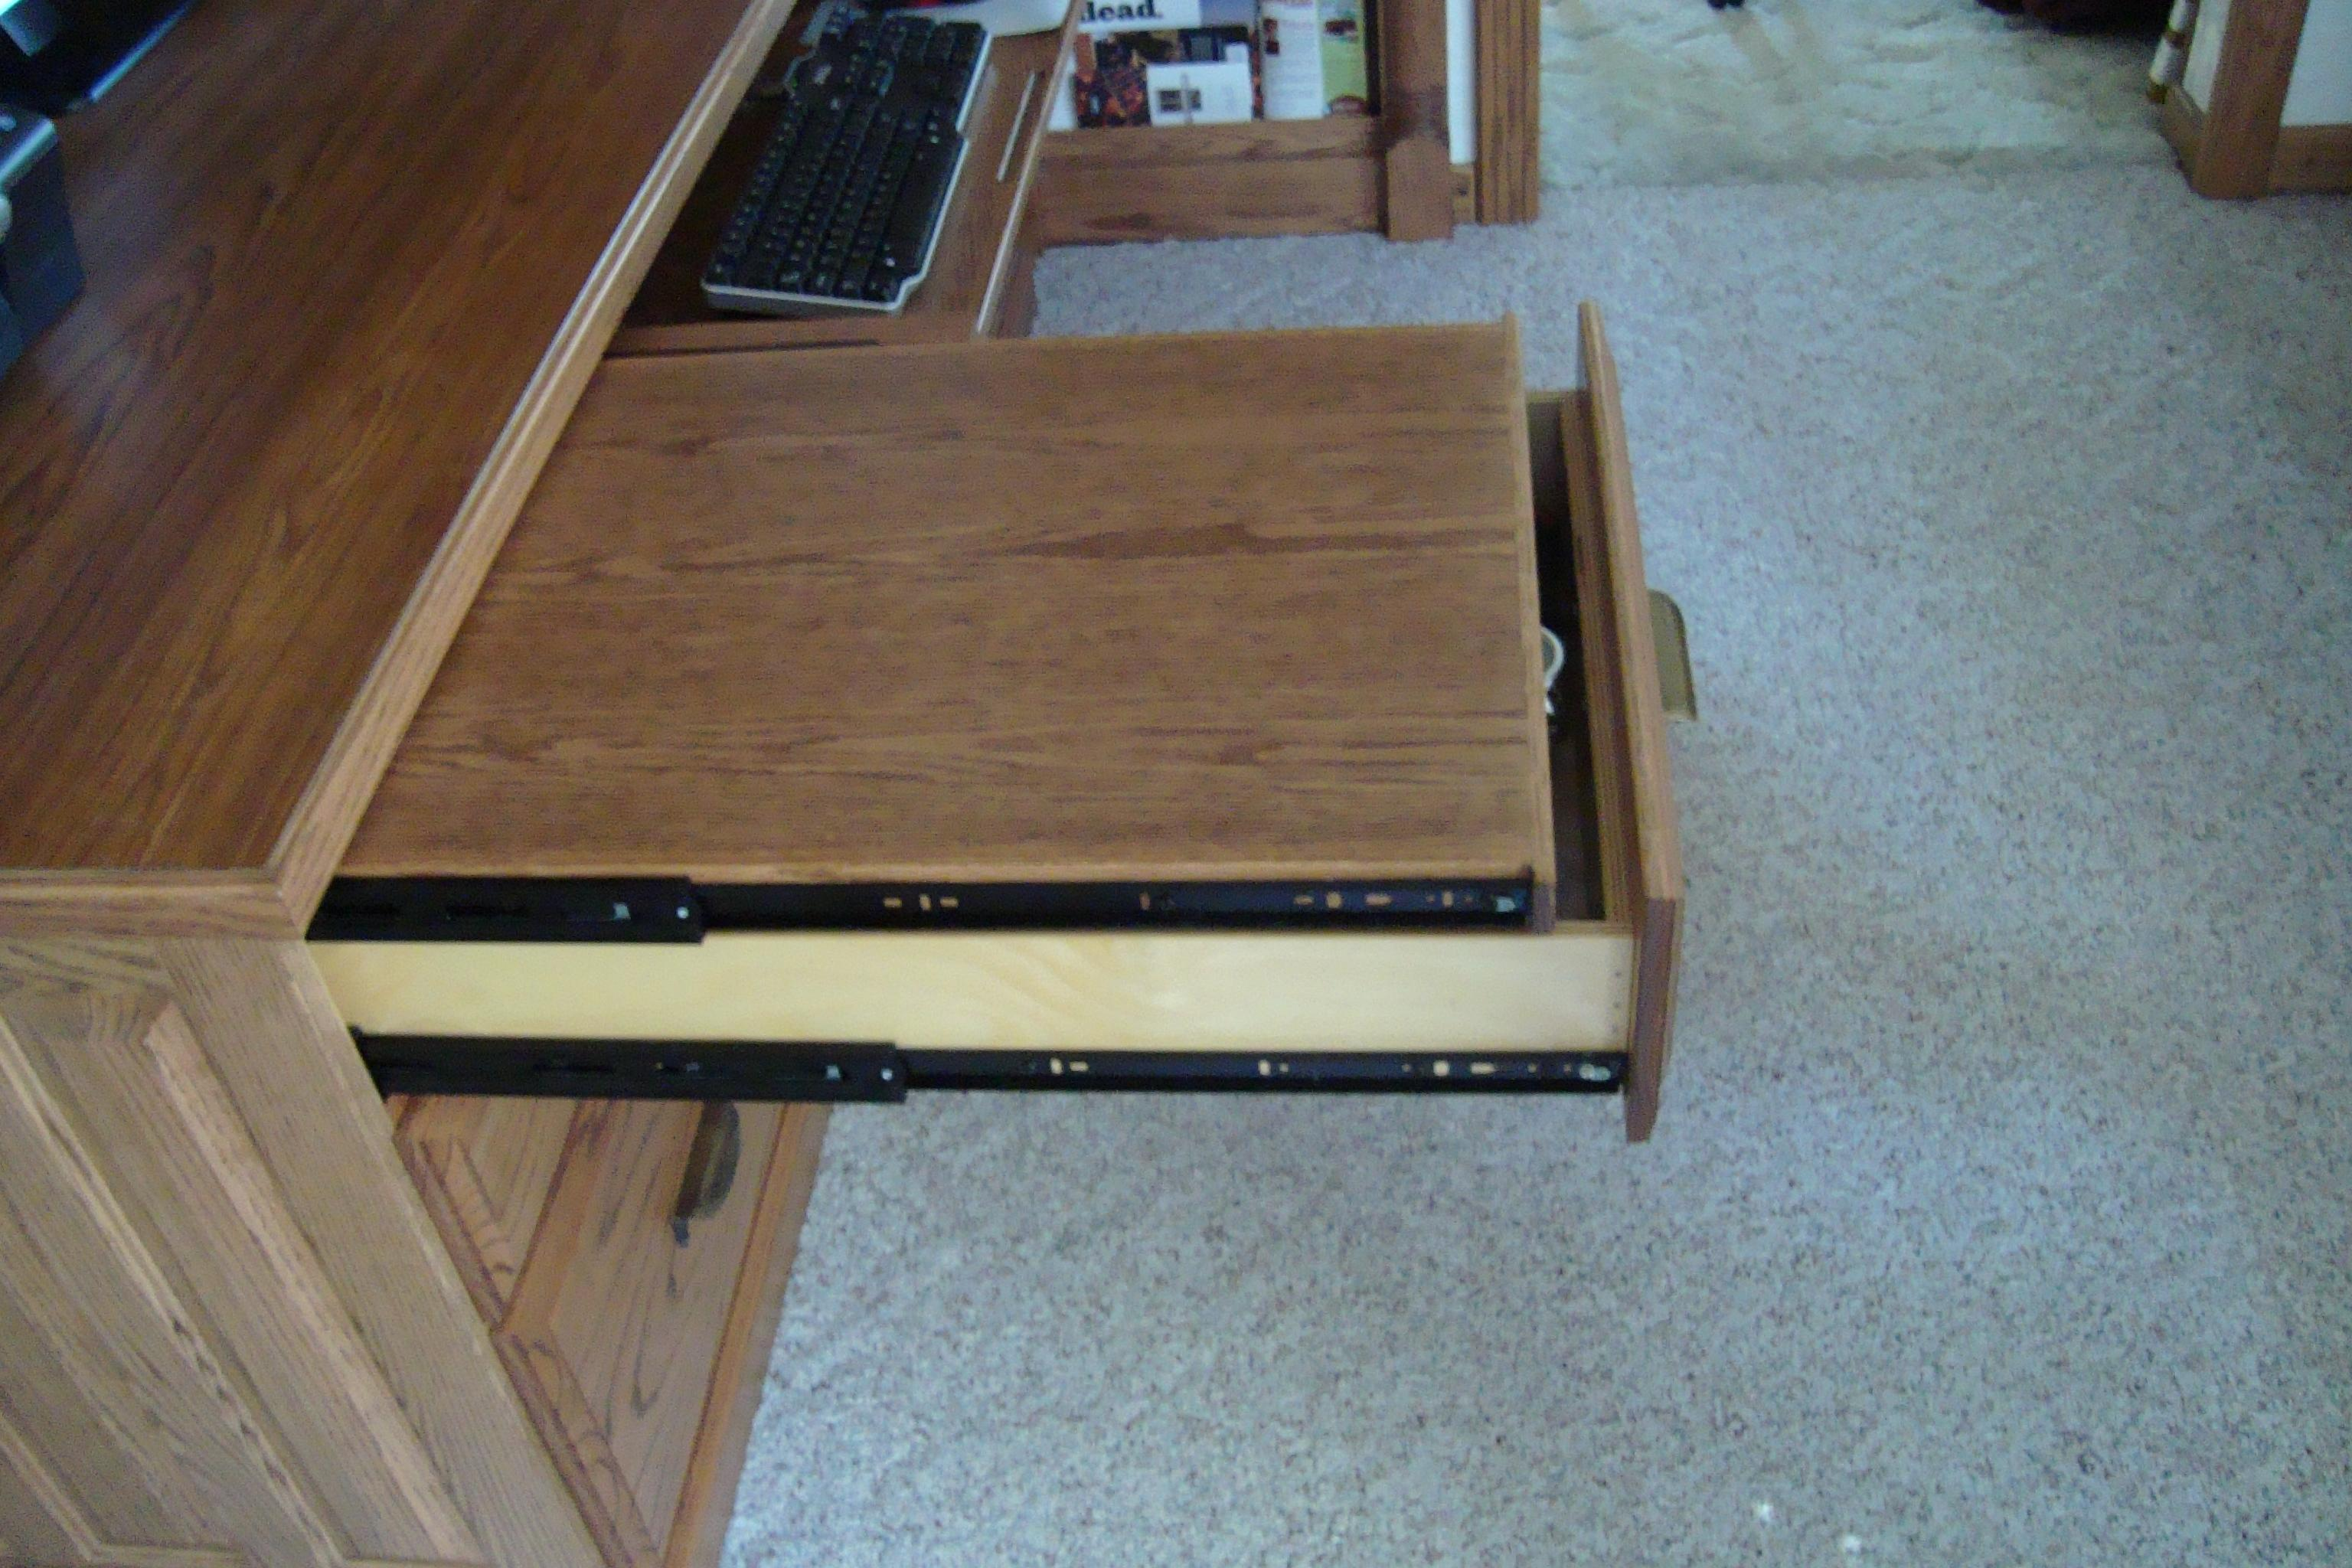 A Full N Computer Desk Pull Out Tray Keyboard For Mouse And False Back To Hide Wires 2 Drawers Double Sets Of Files Lots Dividers